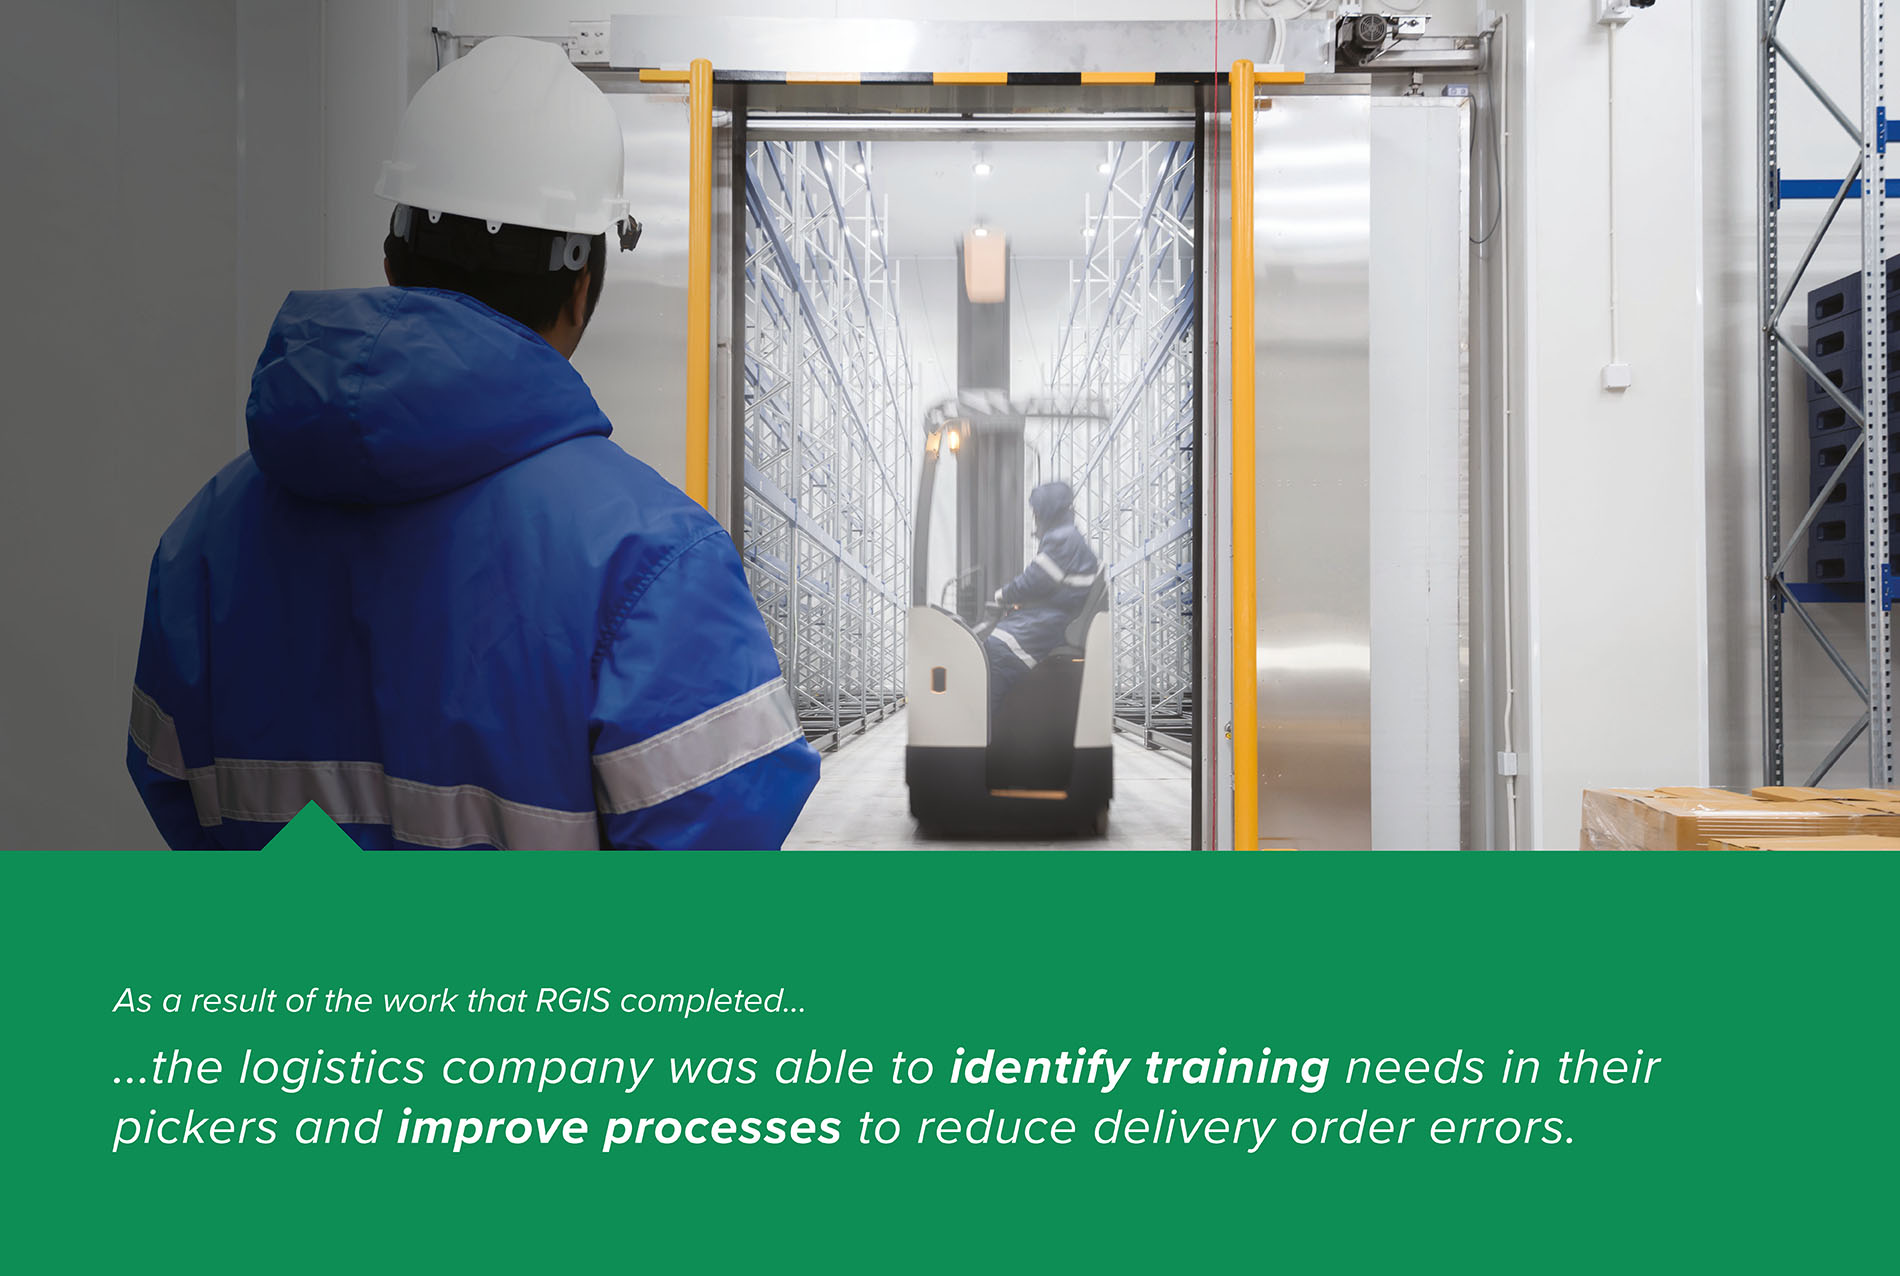 RGIS case study of Warehouse Delivery Checks And Pick Accuracy